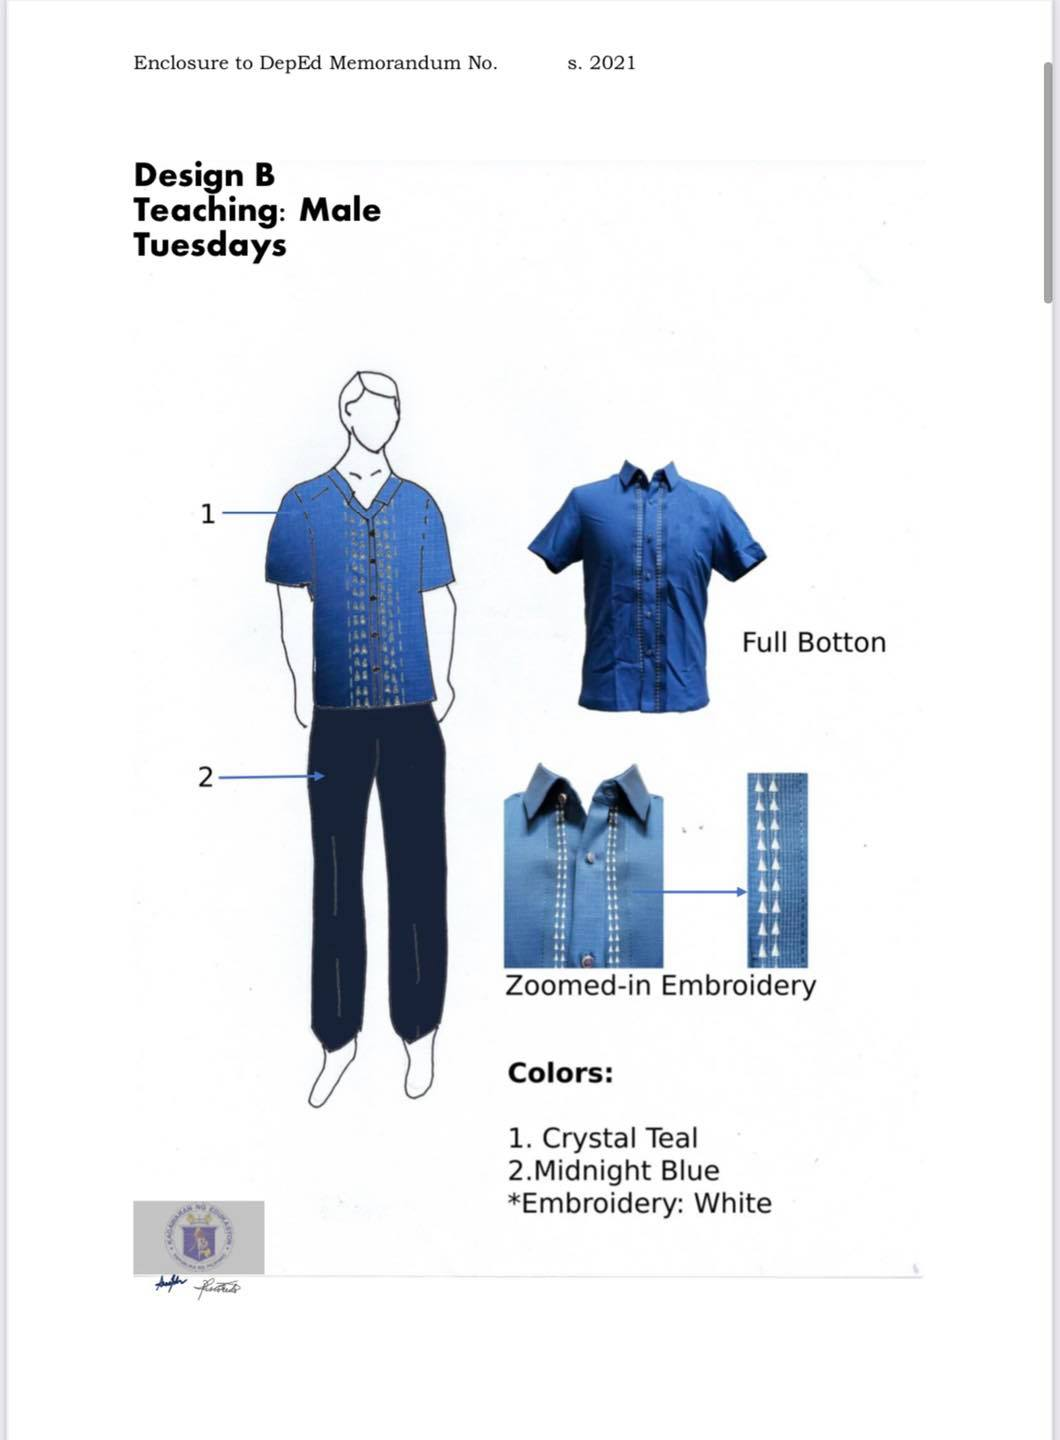 DepEd National Uniform Design B for Male Teaching Personnel (Tuesdays)